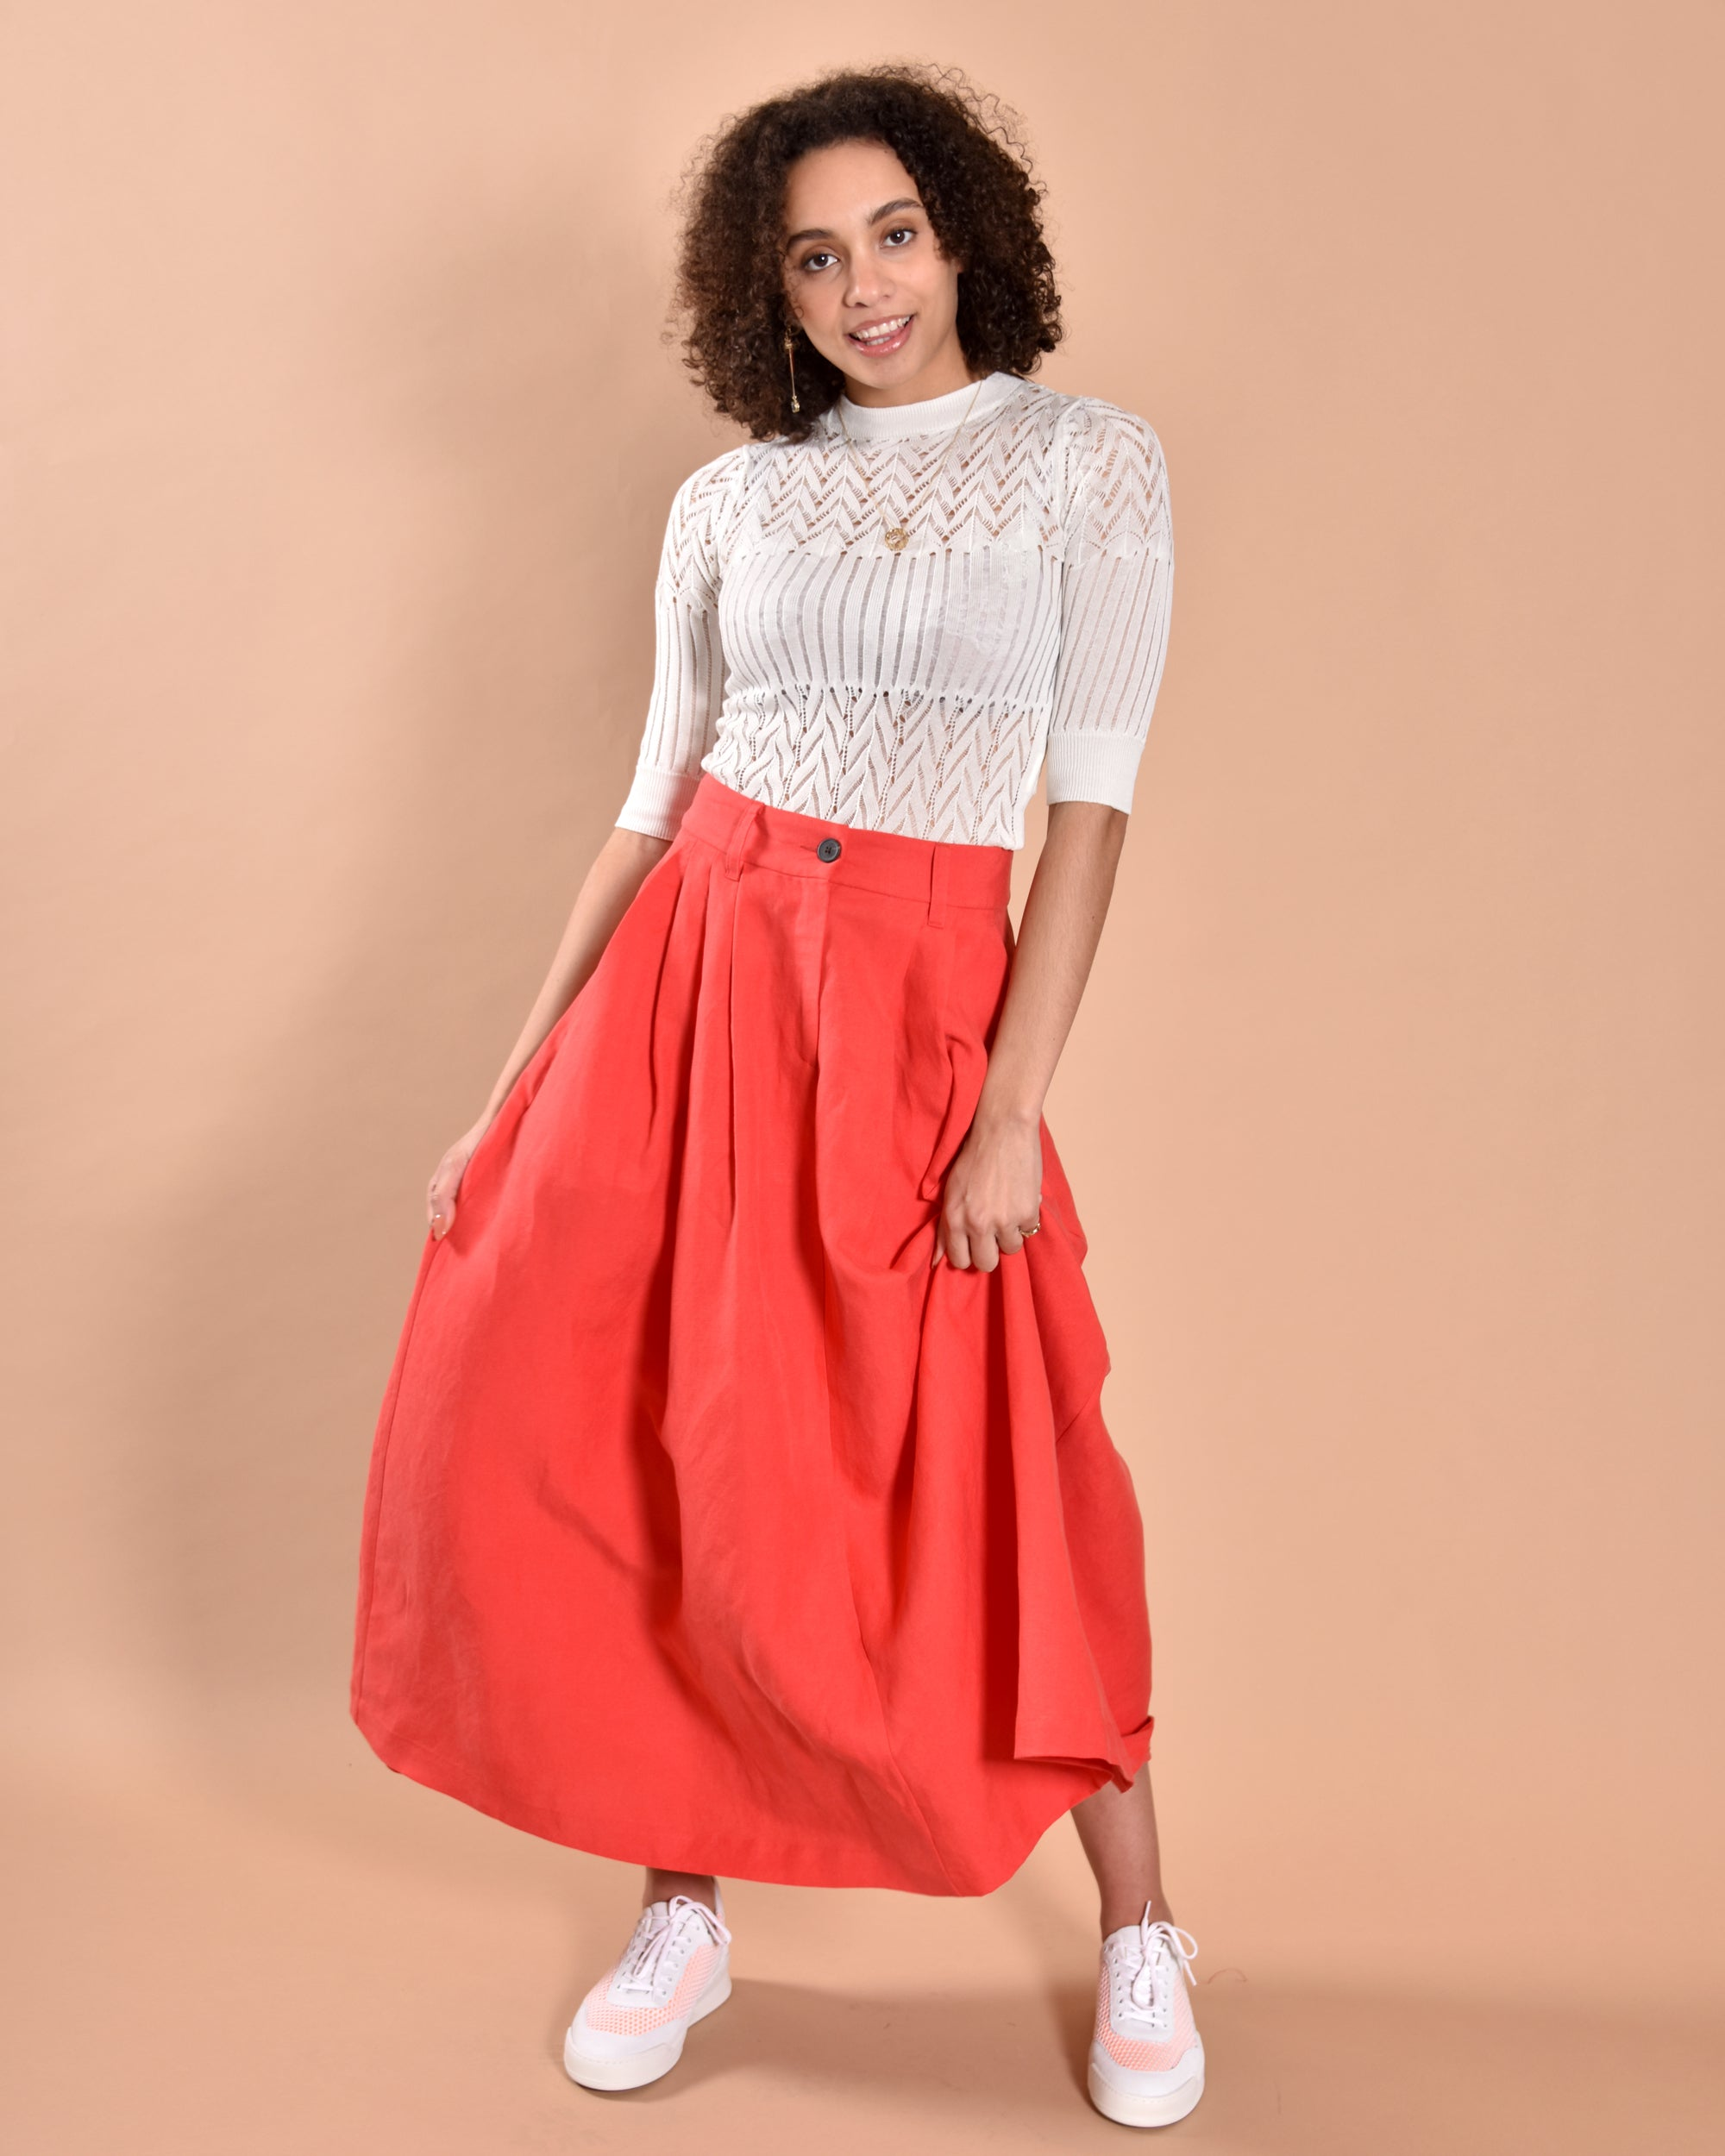 MARA HOFFMAN Tulay Skirt / Red